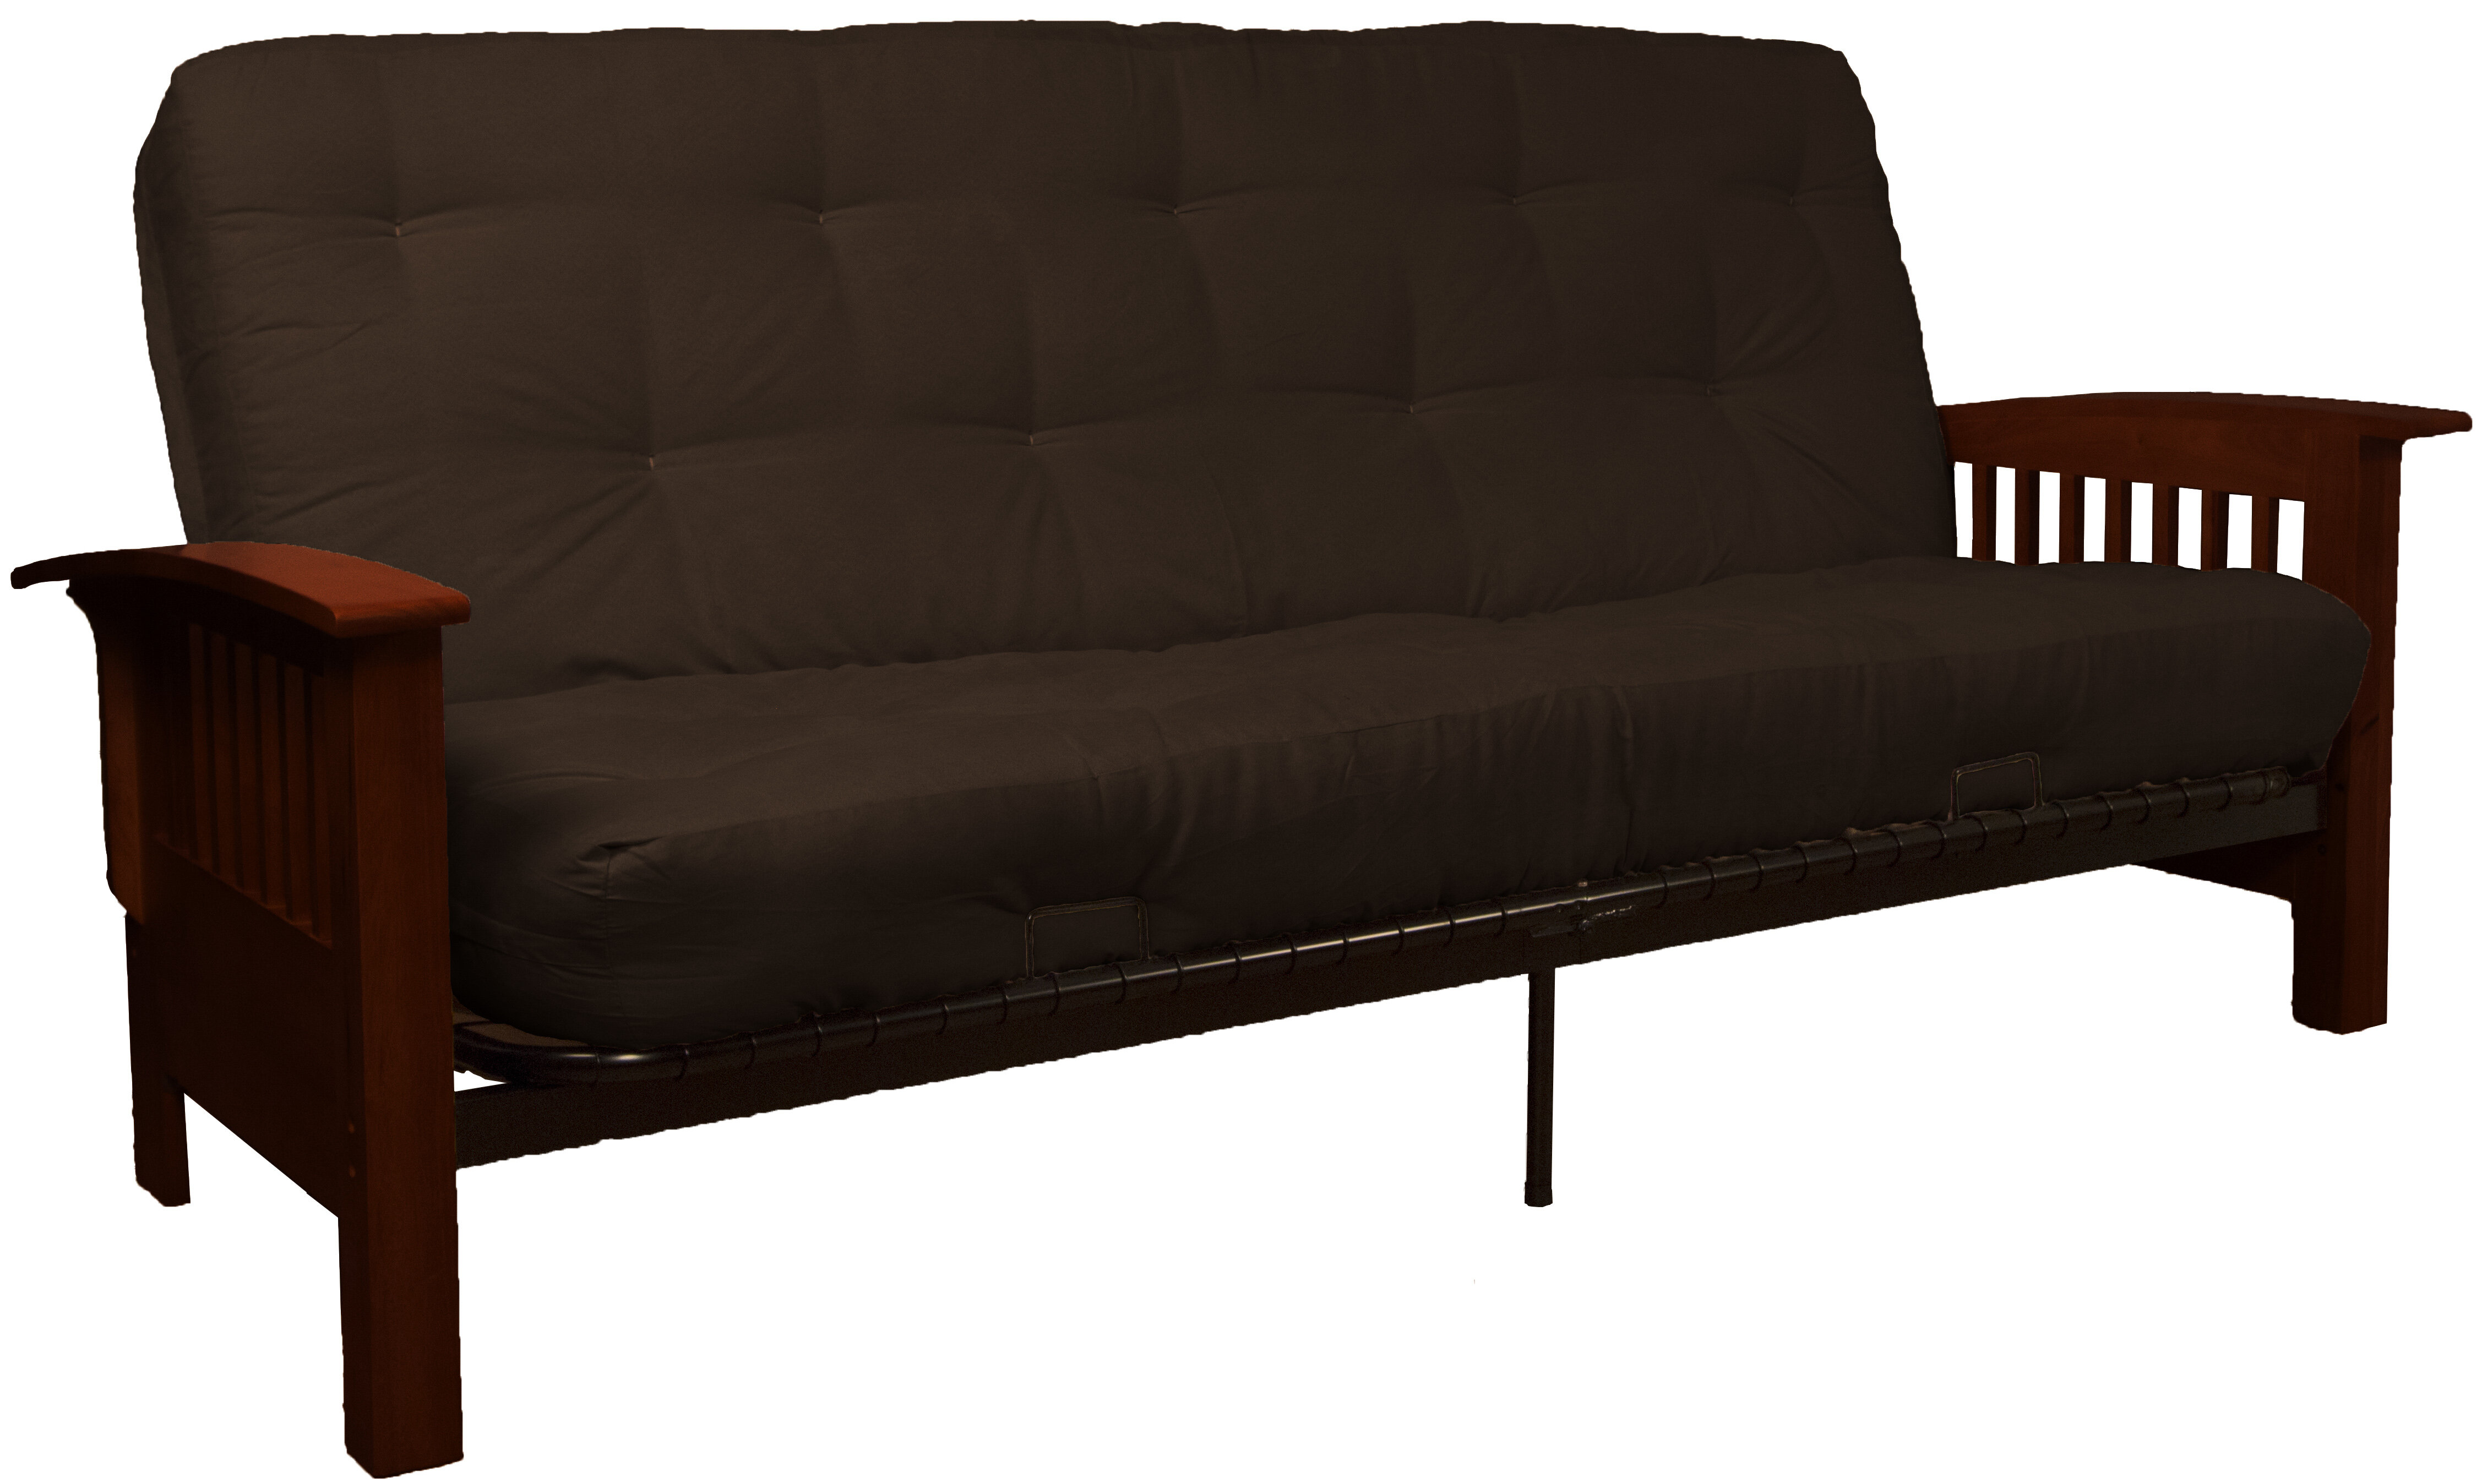 z sofa lounger pin bed chair fold chairbed foam gilda matress single mattress ebay guest futon out